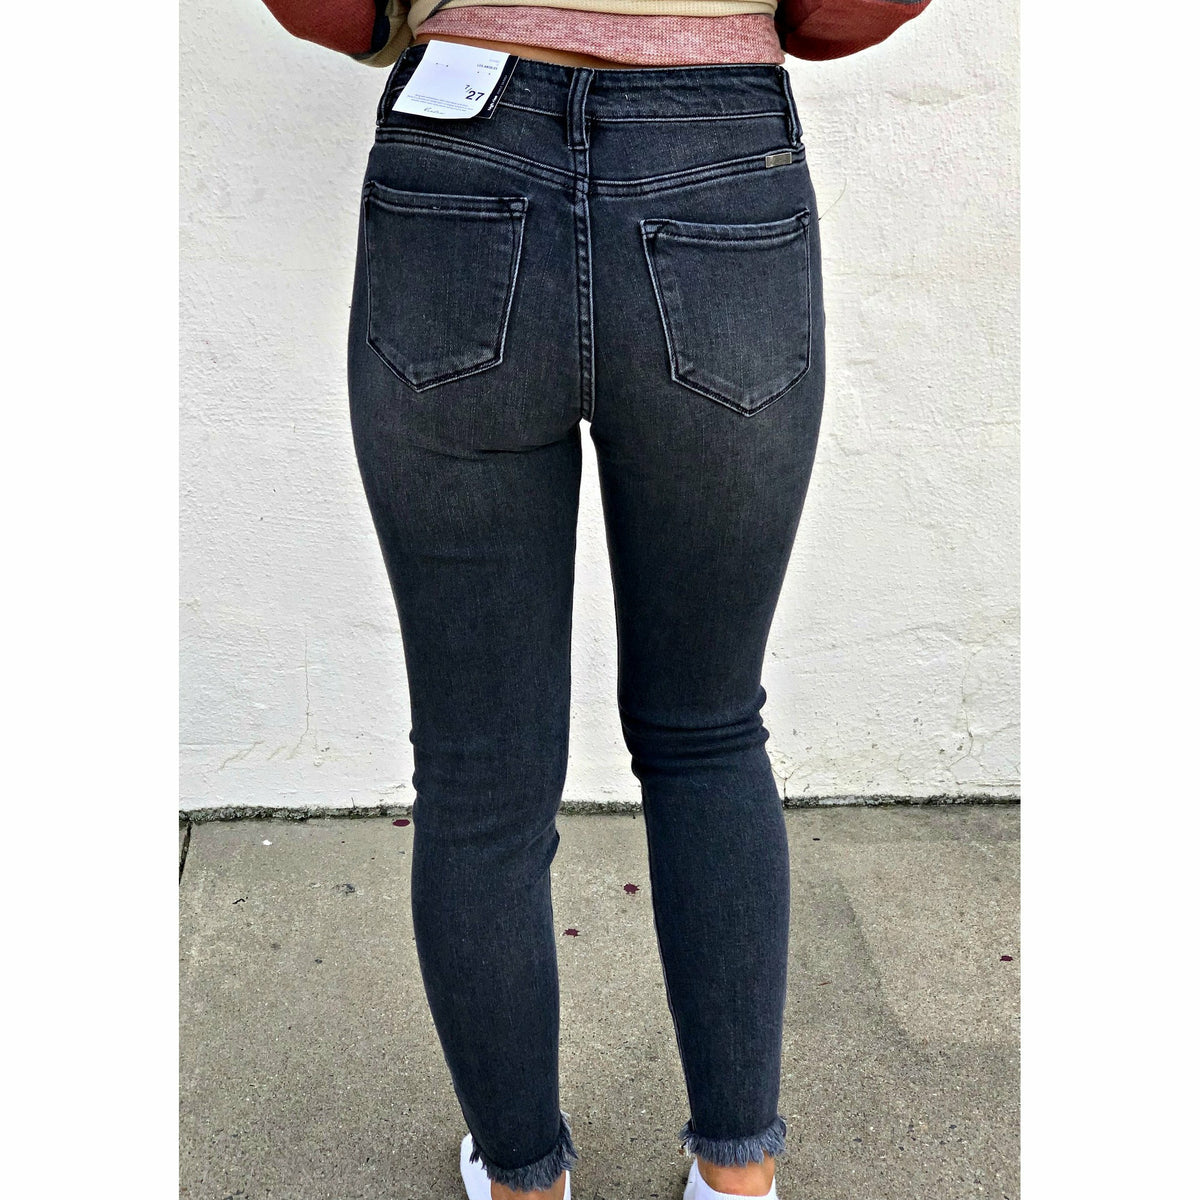 Black faded Kancan Jeans